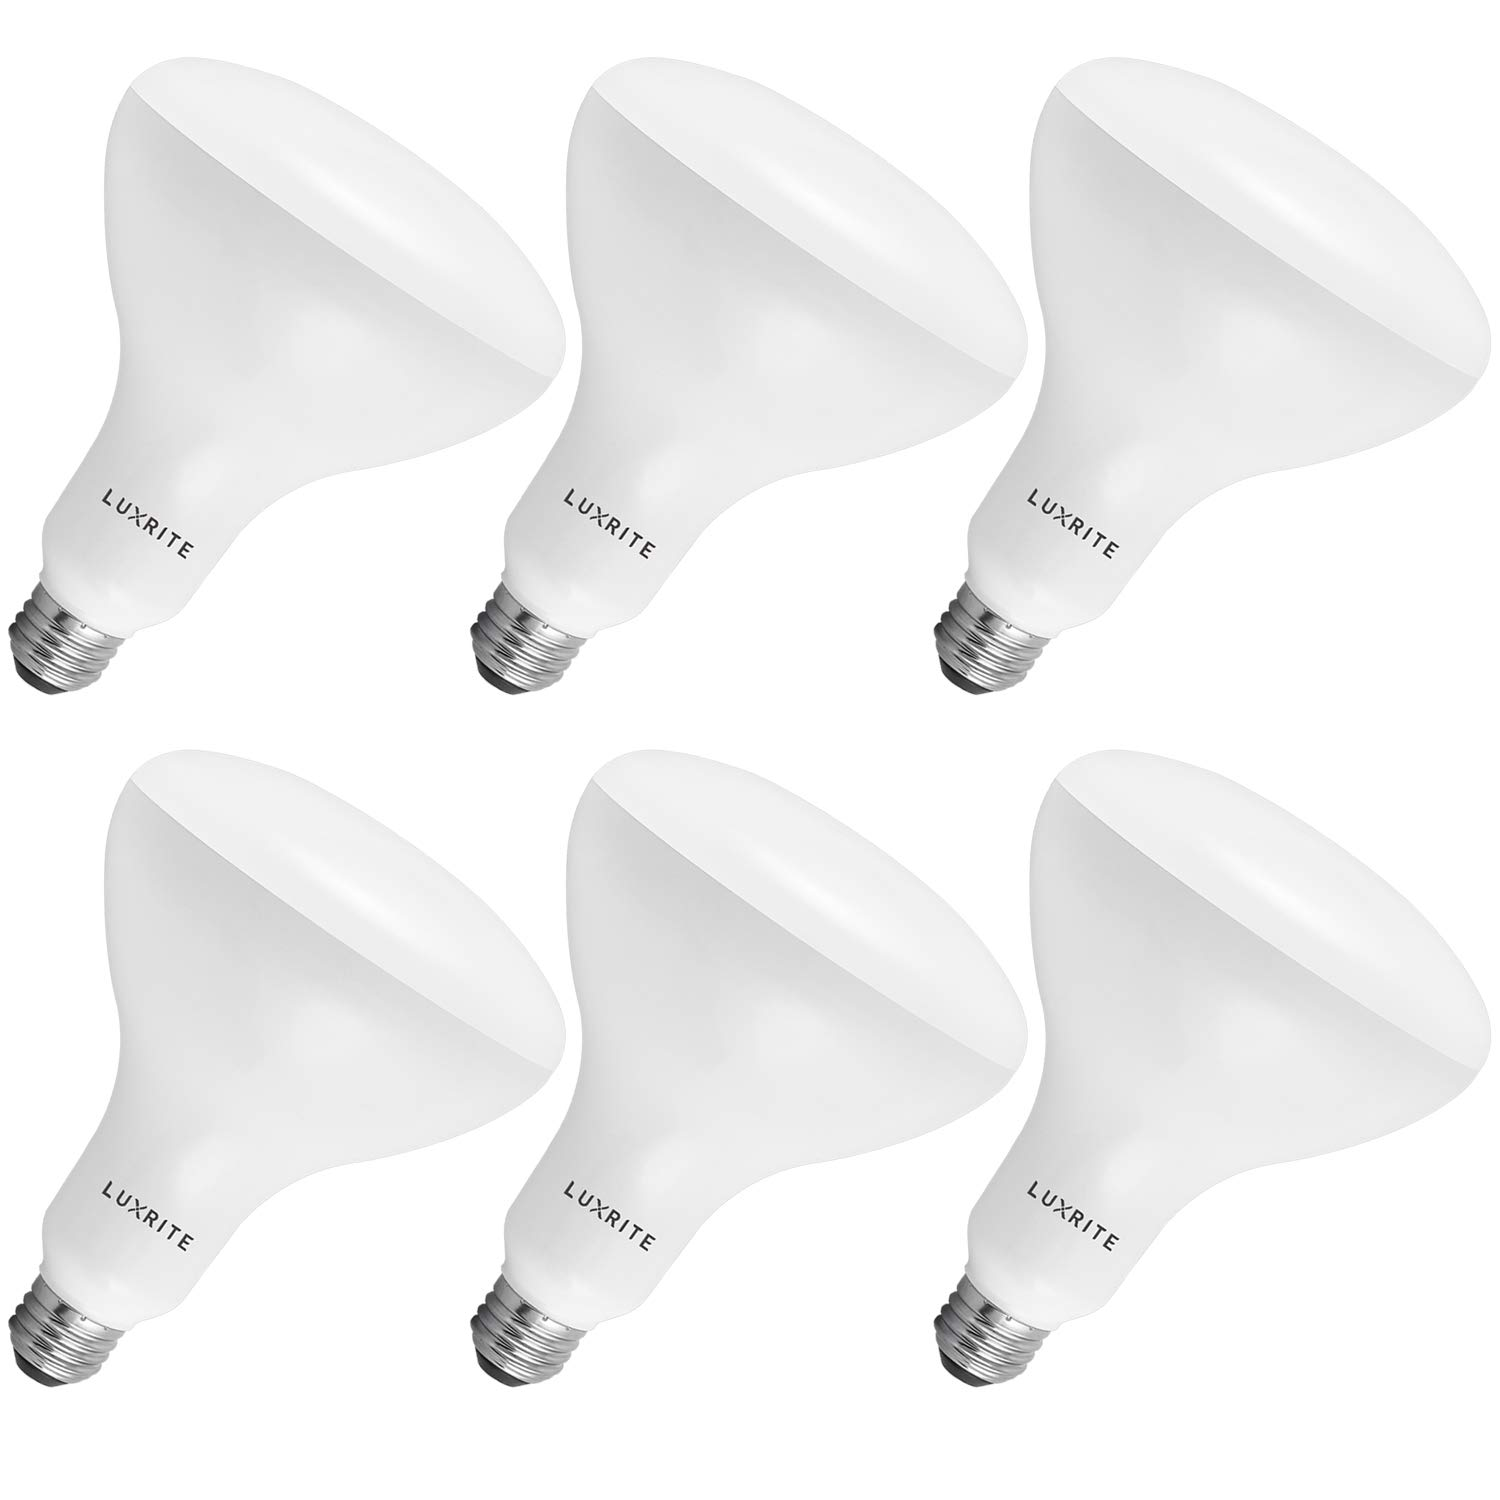 Luxrite BR40 LED Light Bulbs, 85W Equivalent, 3500K Natural White, Dimmable, 1100 Lumens, LED Flood Light Bulb, 14W, E26 Medium Base, Indoor/Outdoor - Perfect for Office and Recessed Lighting (6 Pack)